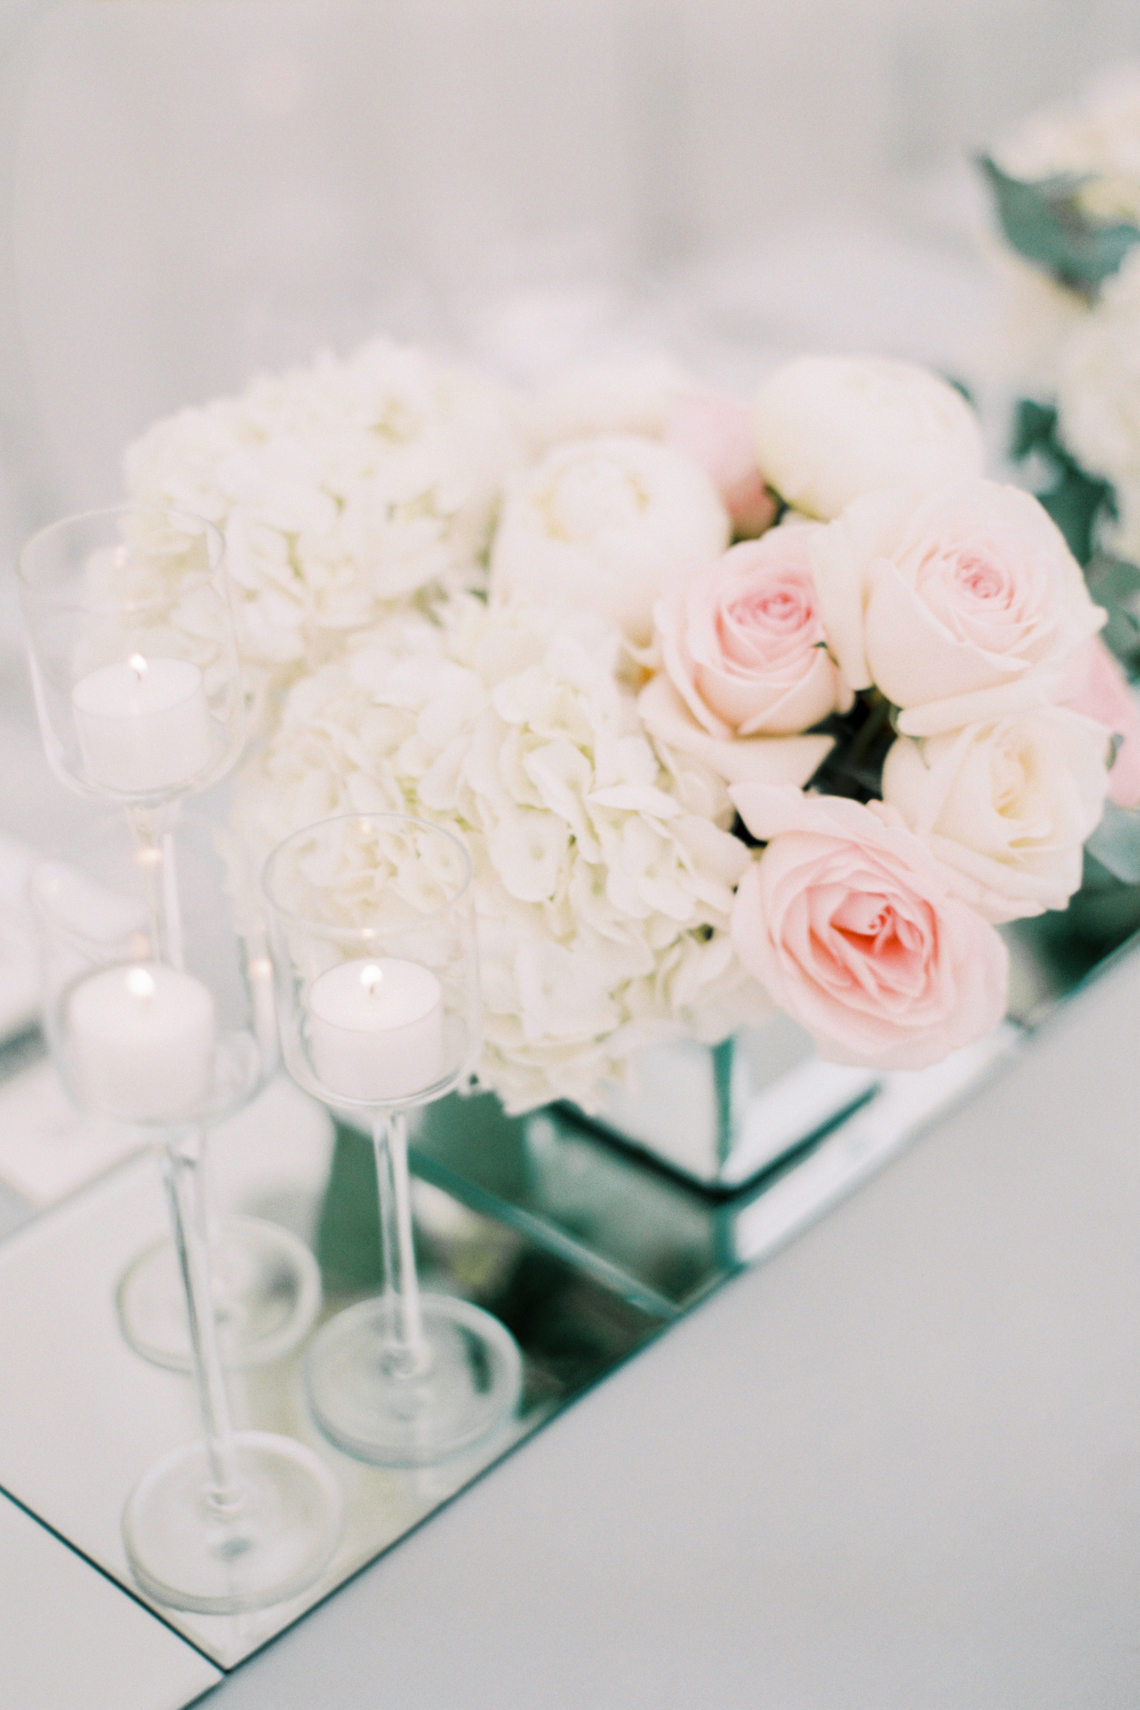 Luxurious Peony Filled Wedding At Home – Katie Julia – Lily and Sage 38